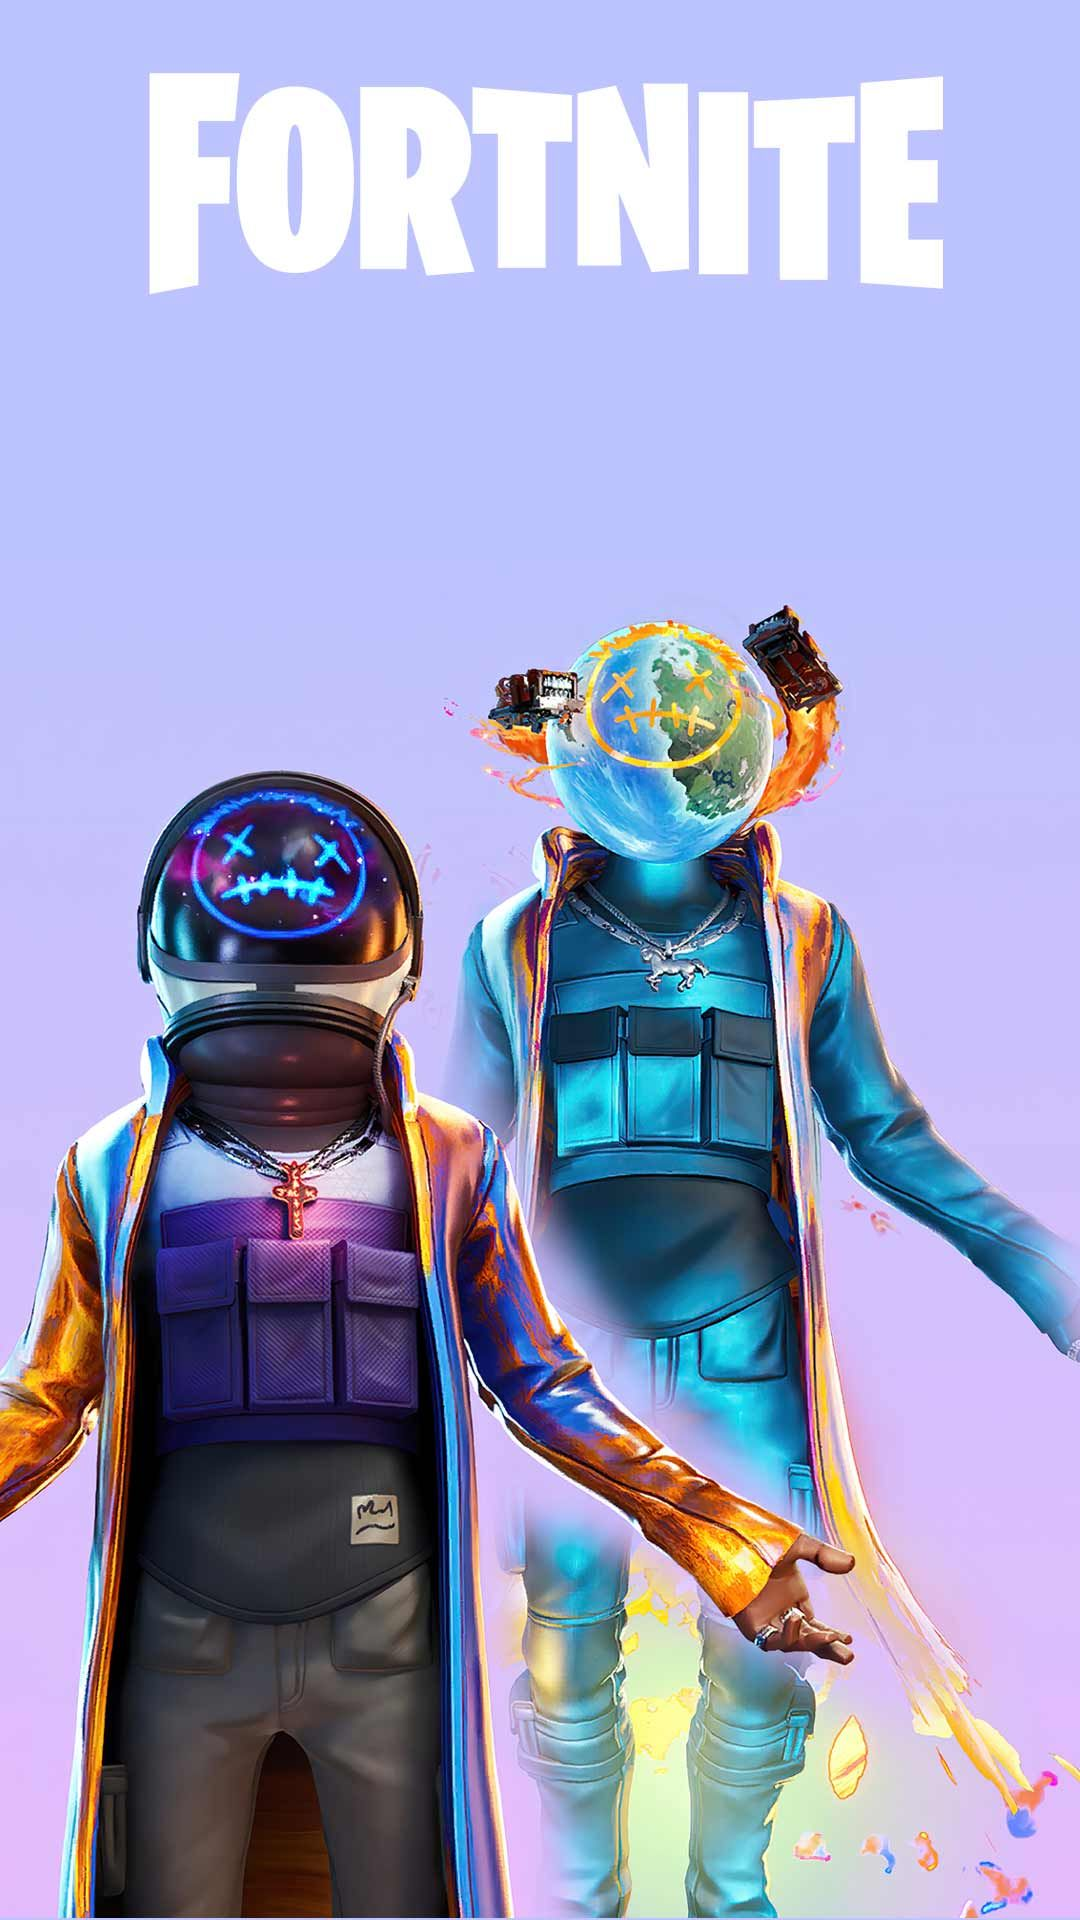 Astro jack fortnite skin wallpaper HD phone backgrounds